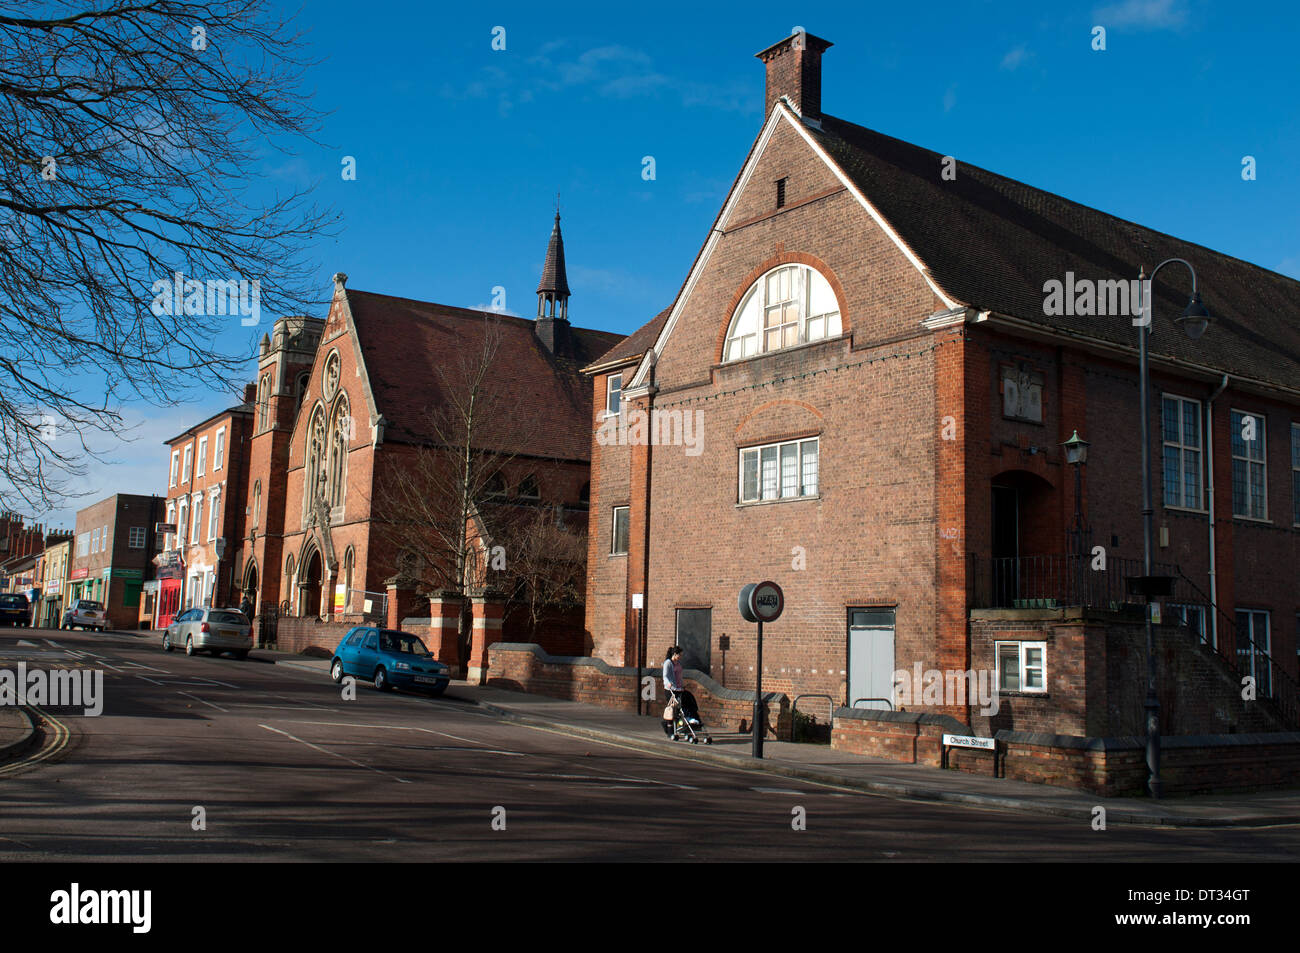 Creed Street Arts Centre and Church Street, Wolverton, Buckinghamshire, England, UK - Stock Image